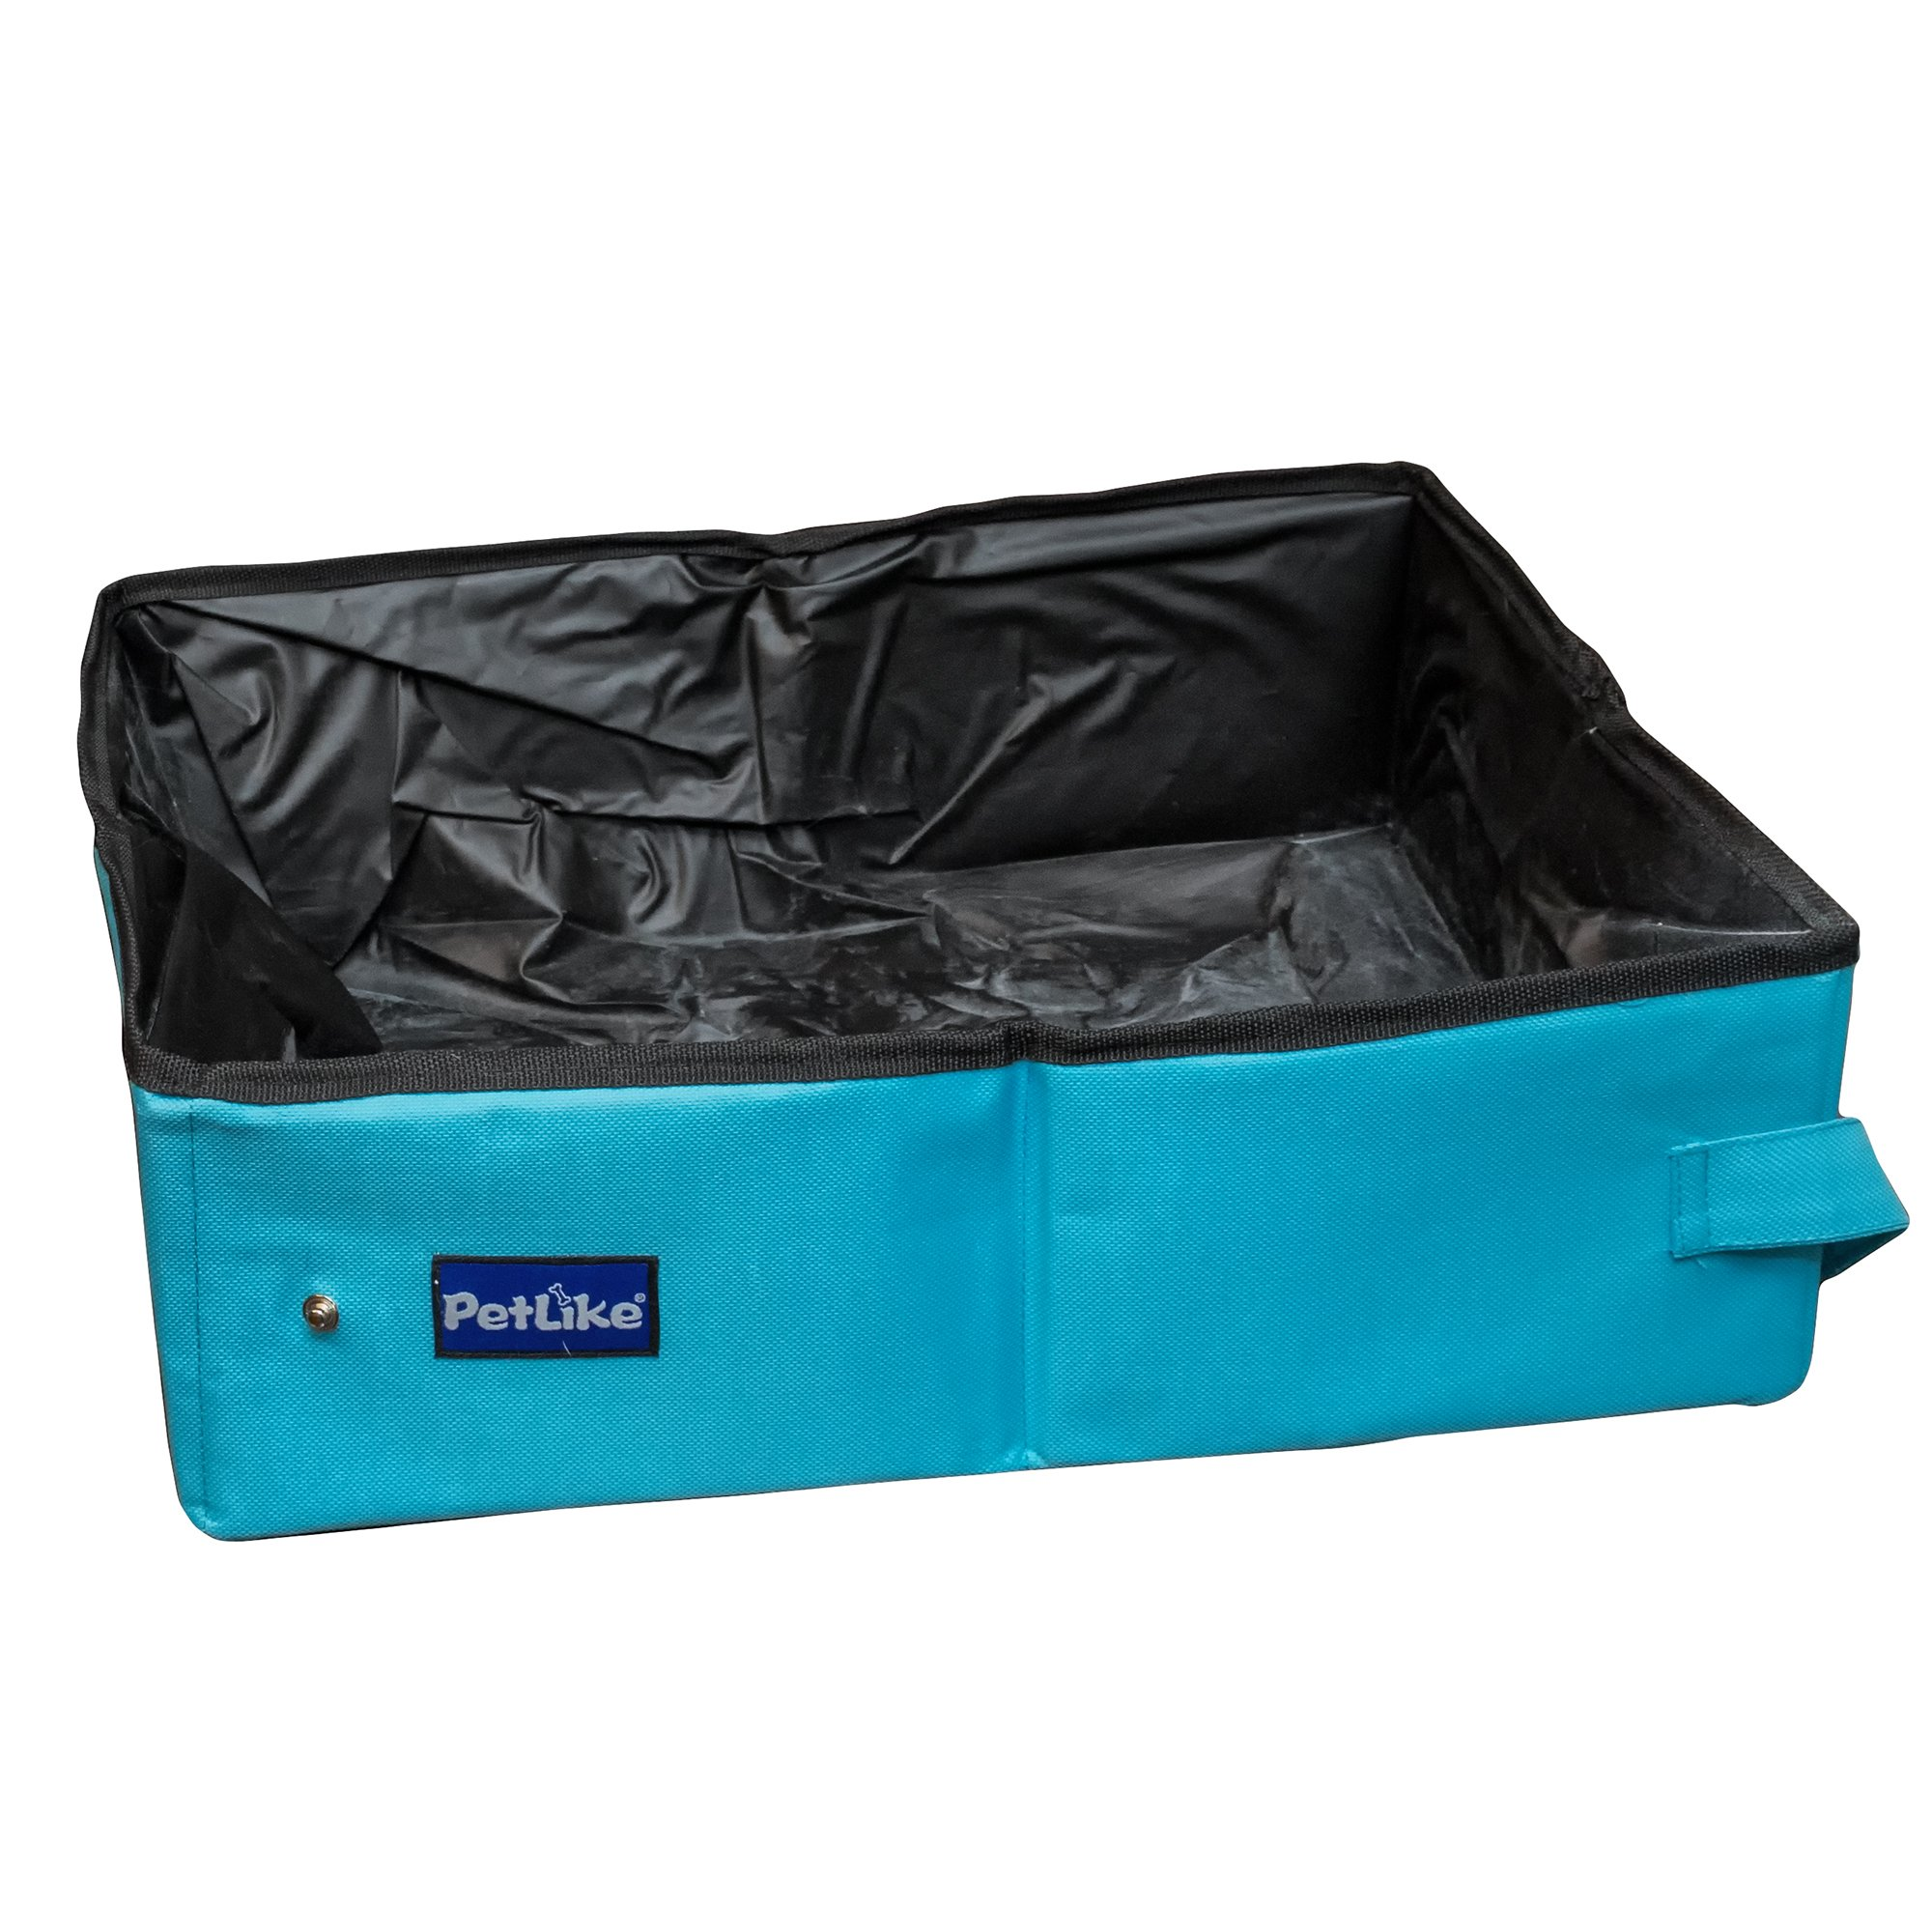 Petlike Collapsible Portable Pet Litter Box Travel